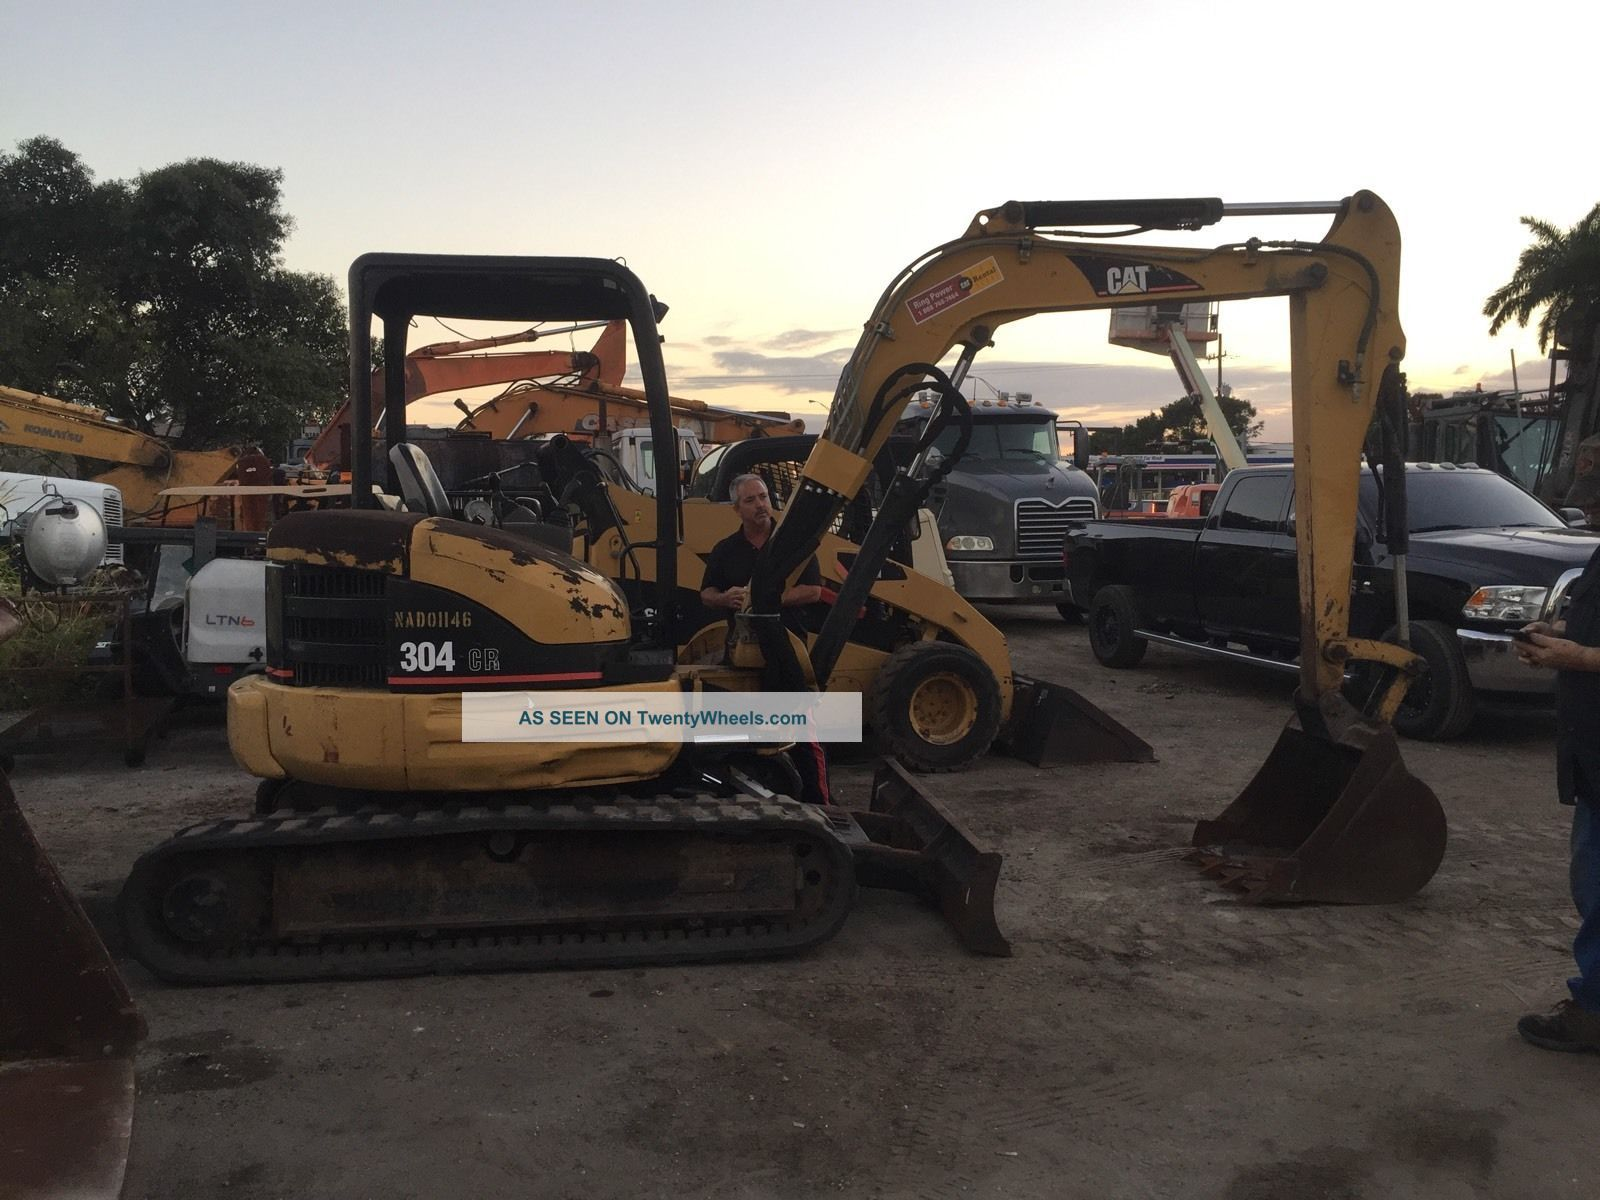 2004 Caterpillar Cat 304cr Mini Excavator Only 2557 Hours See more 2004 Caterpillar CAT 304CR Mini Excavator Only... photo